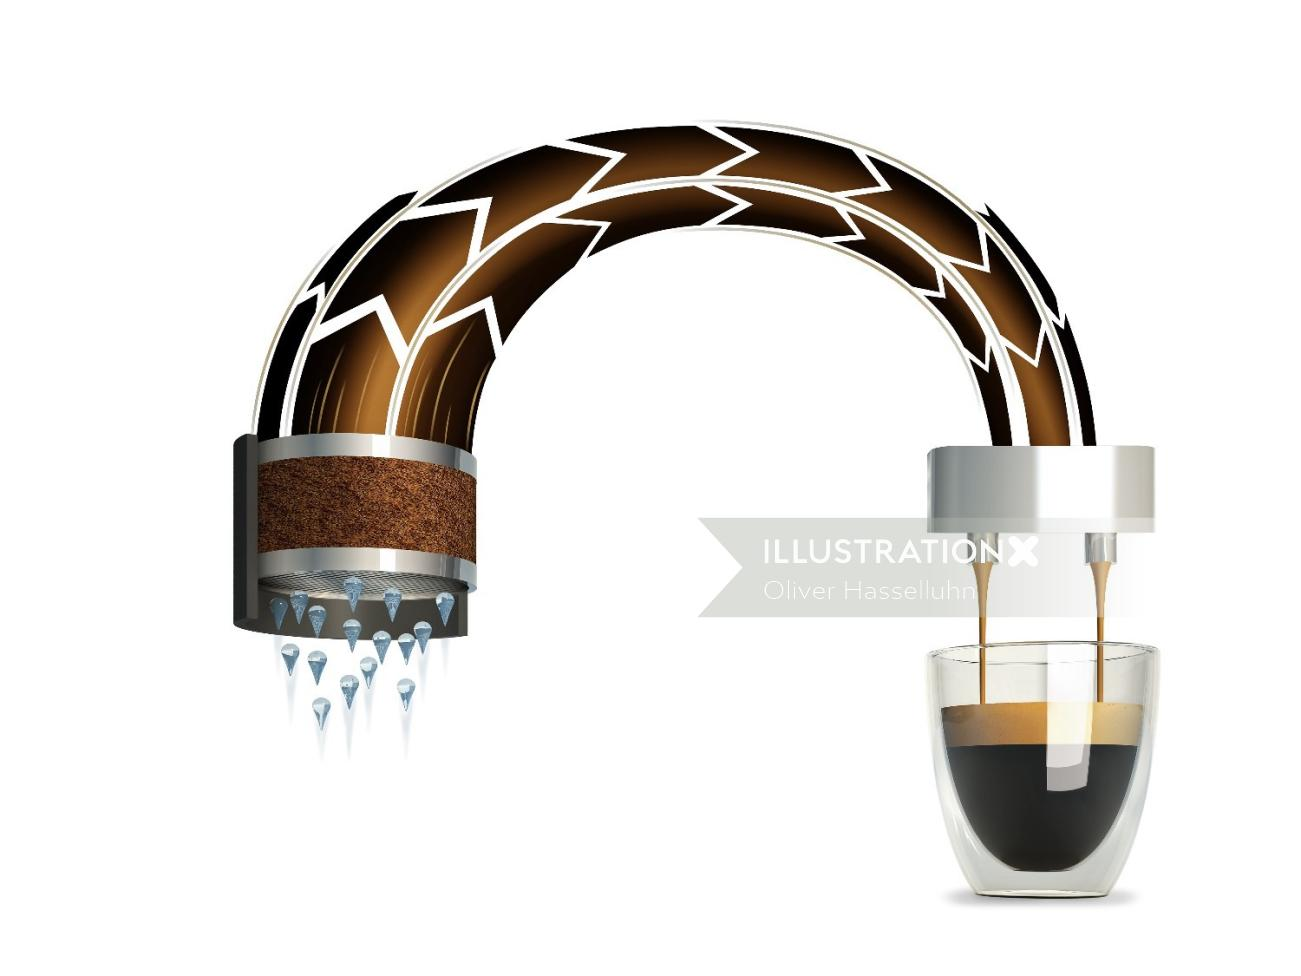 3D illustration of Espresso